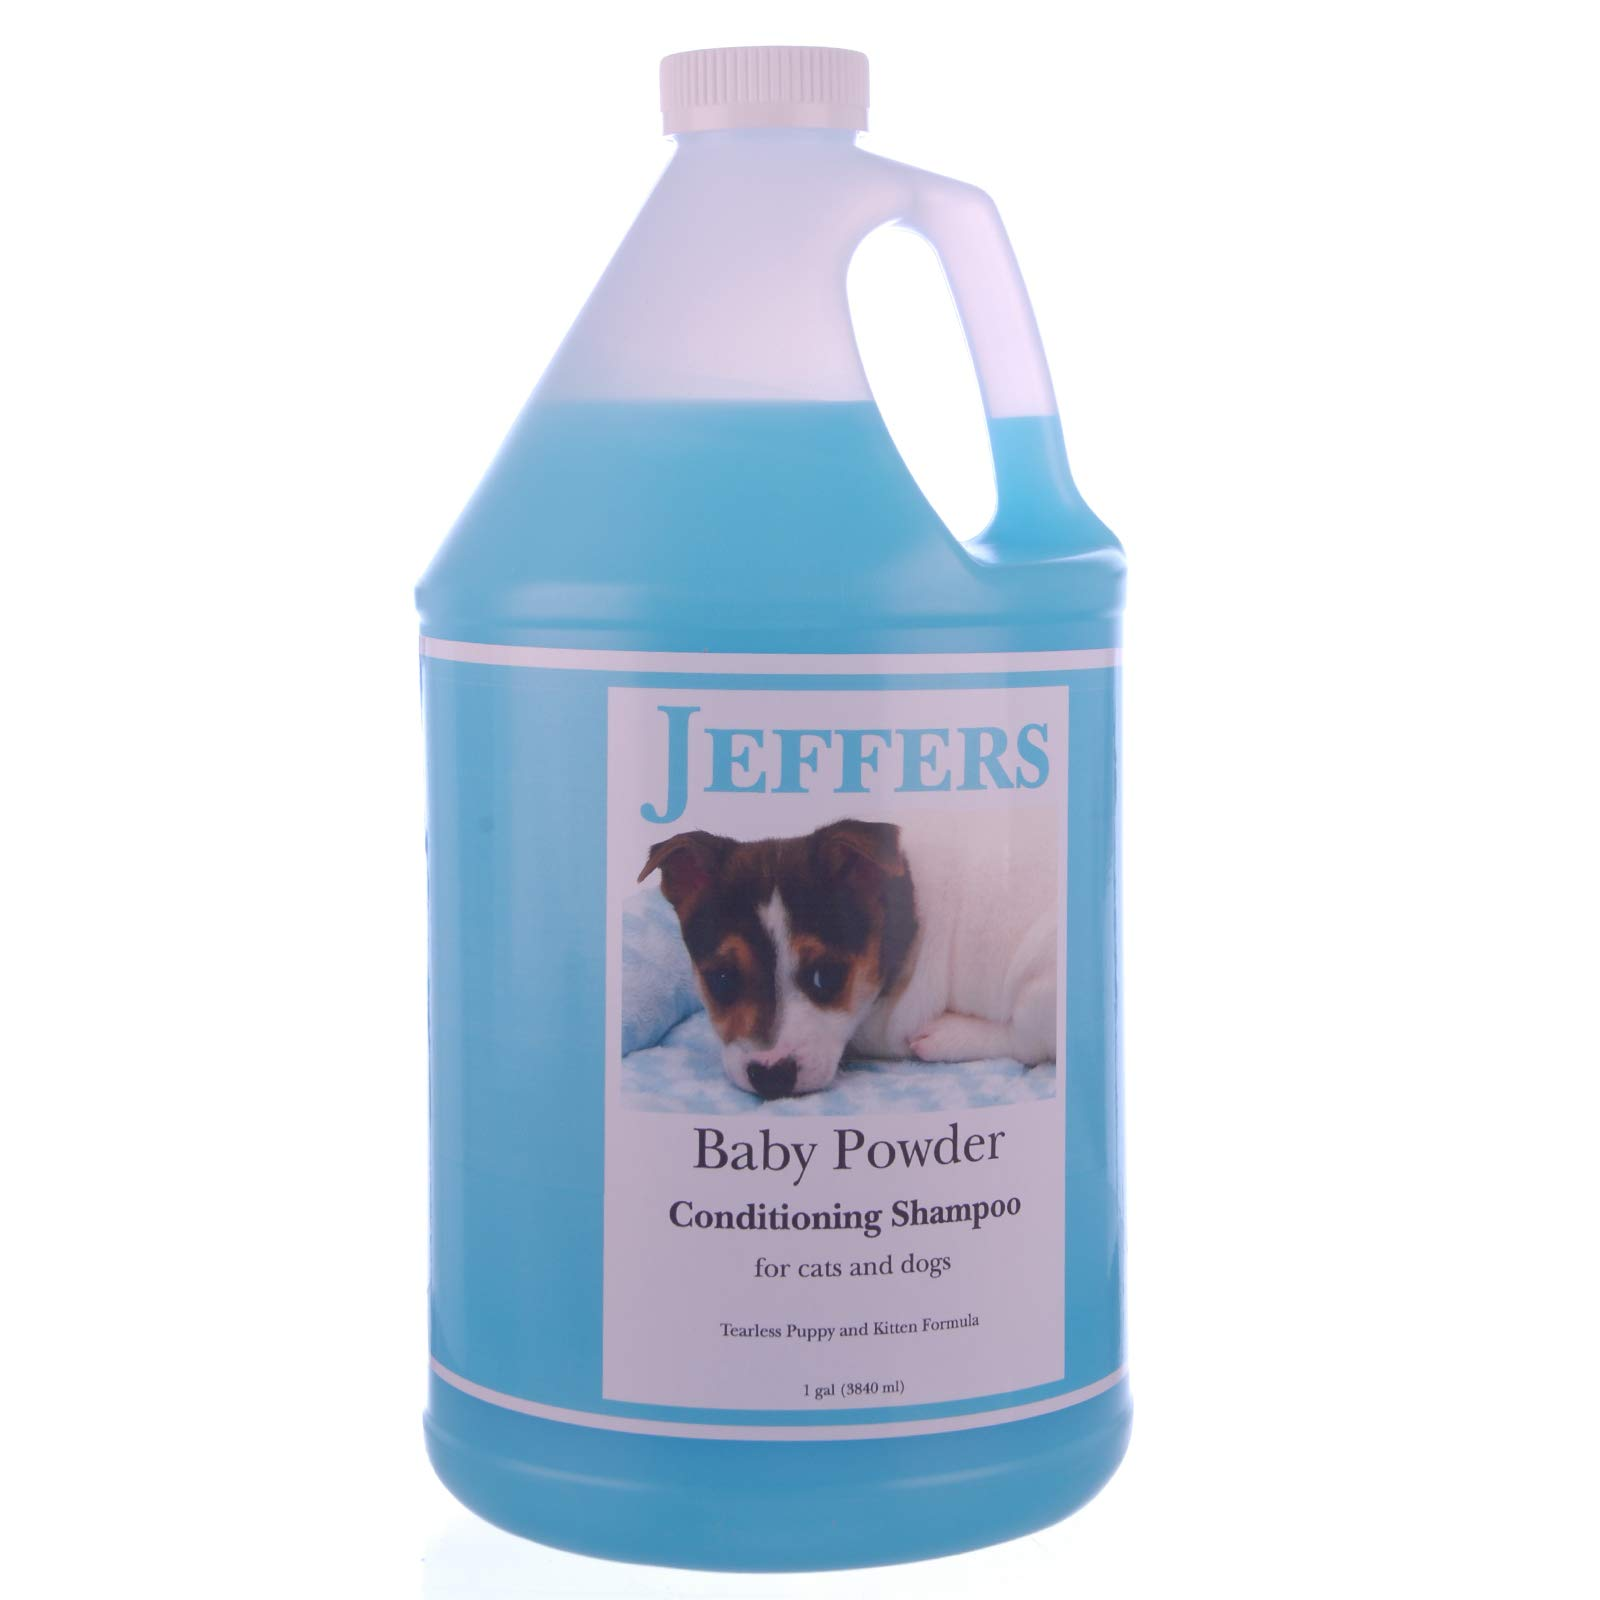 Jeffers Baby Powder Tearless Shampoo, Gallon by JeffersPet